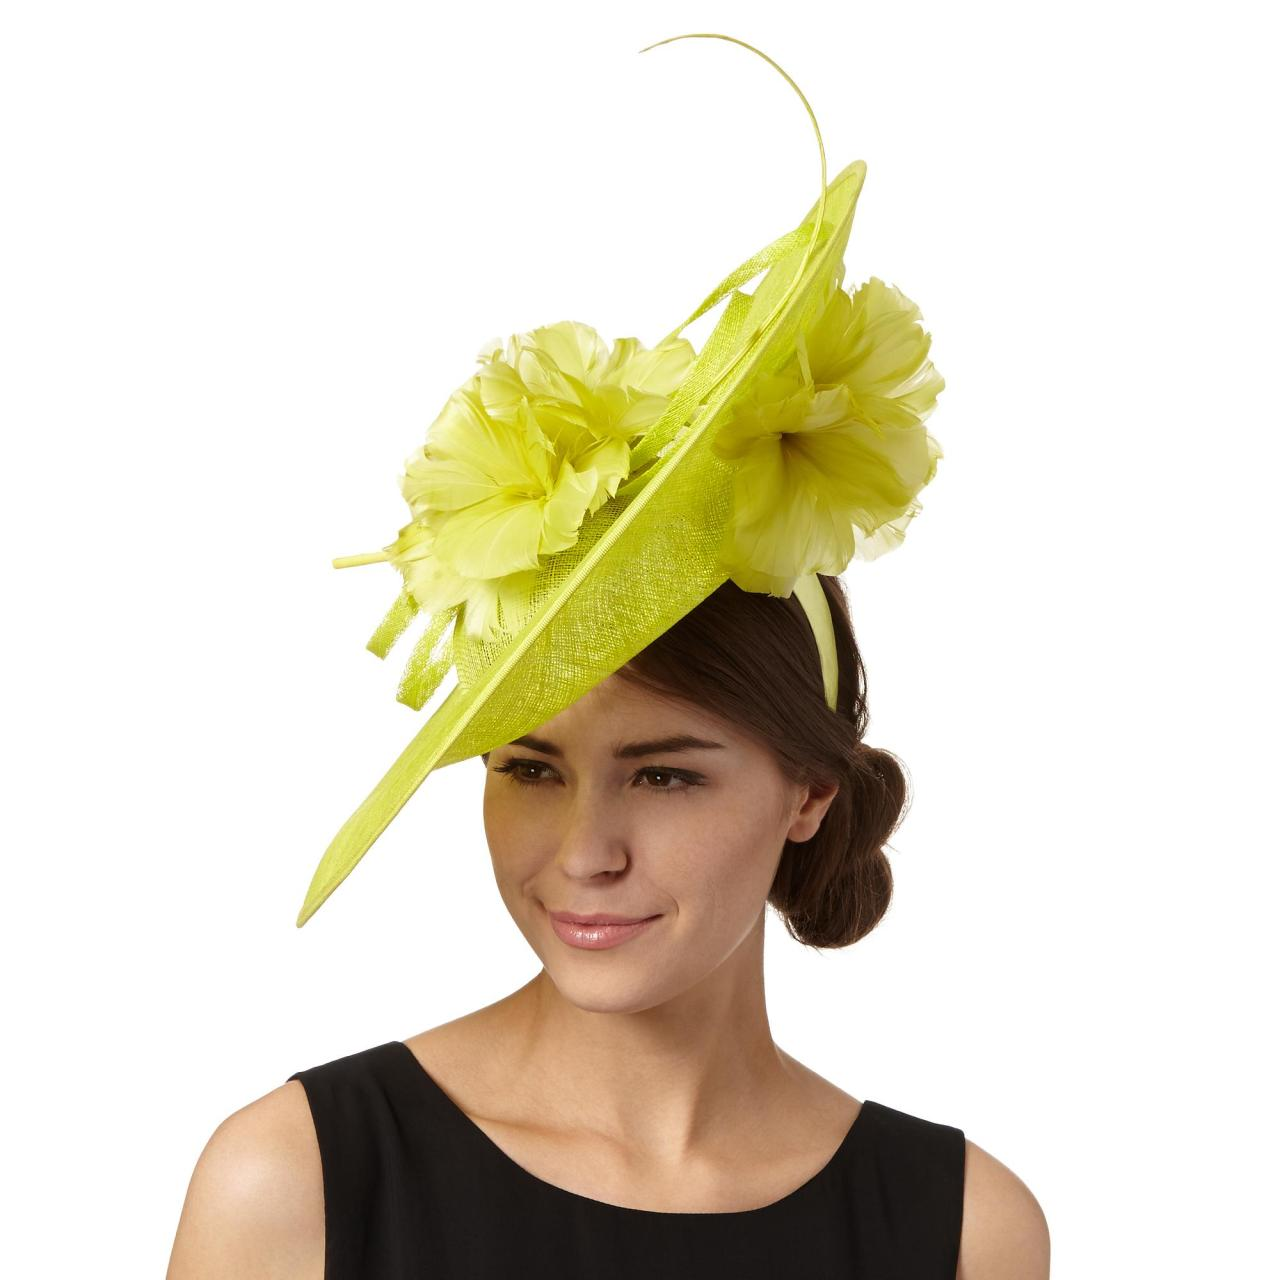 Worthy Of The Derby Outrageous Hats Sister Code